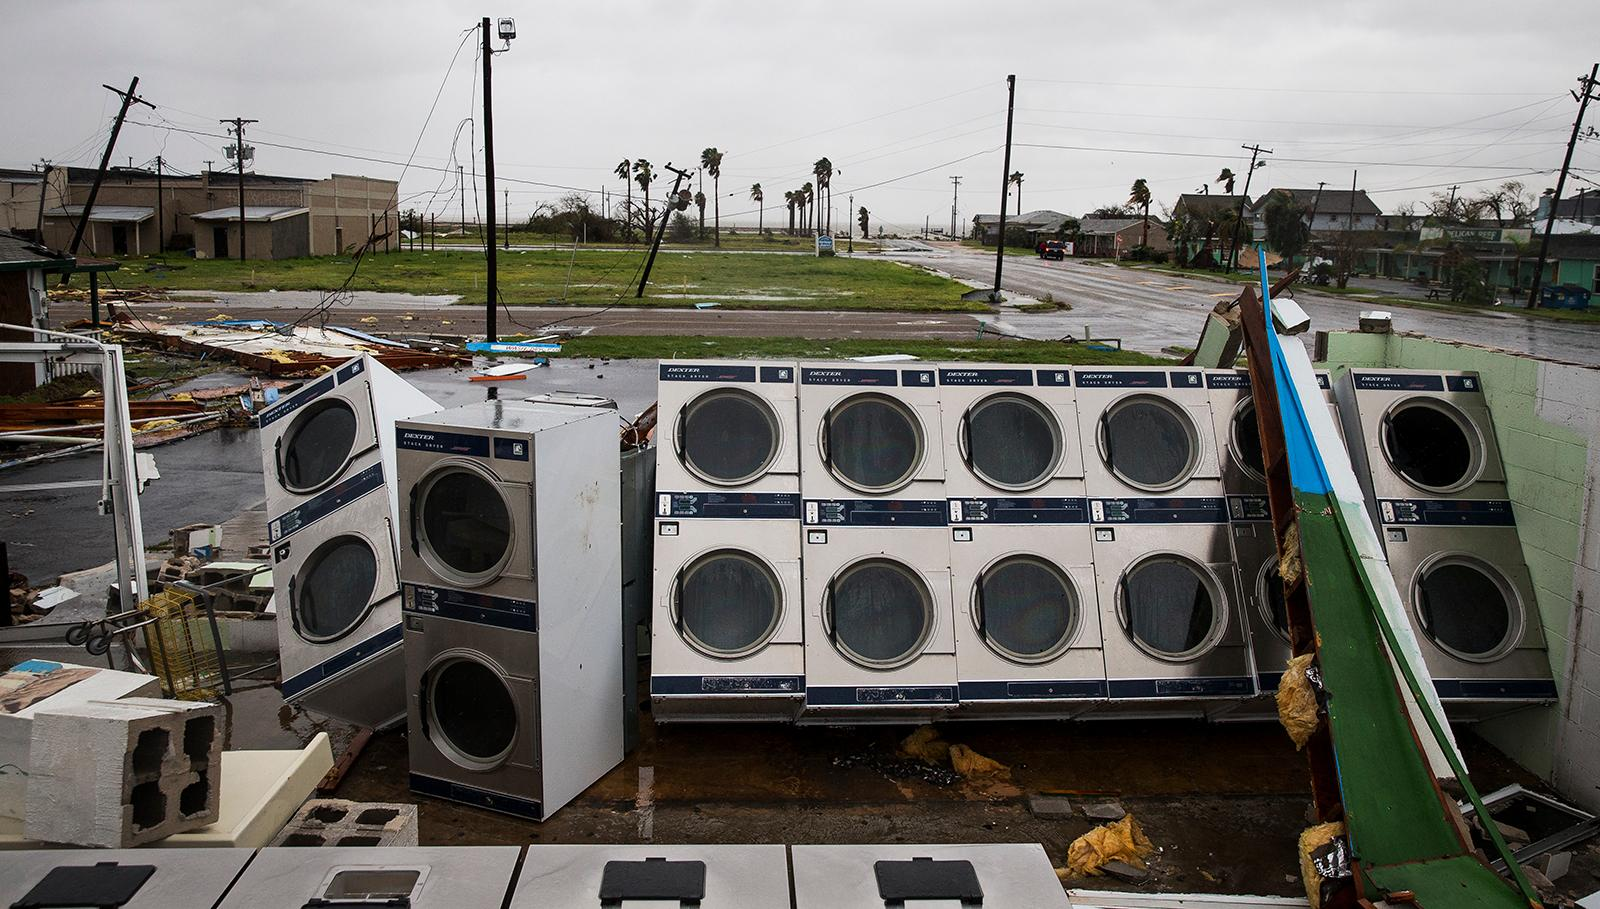 A laundromat's machines sit exposed in the elements after Hurricane Harvey ripped through Rockport, Texas, on Saturday, Aug. 26, 2017.  The fiercest hurricane to hit the U.S. in more than a decade spun across hundreds of miles of coastline where communities had prepared for life-threatening storm surges — walls of water rushing inland.  (Nick Wagner/Austin American-Statesman via AP)